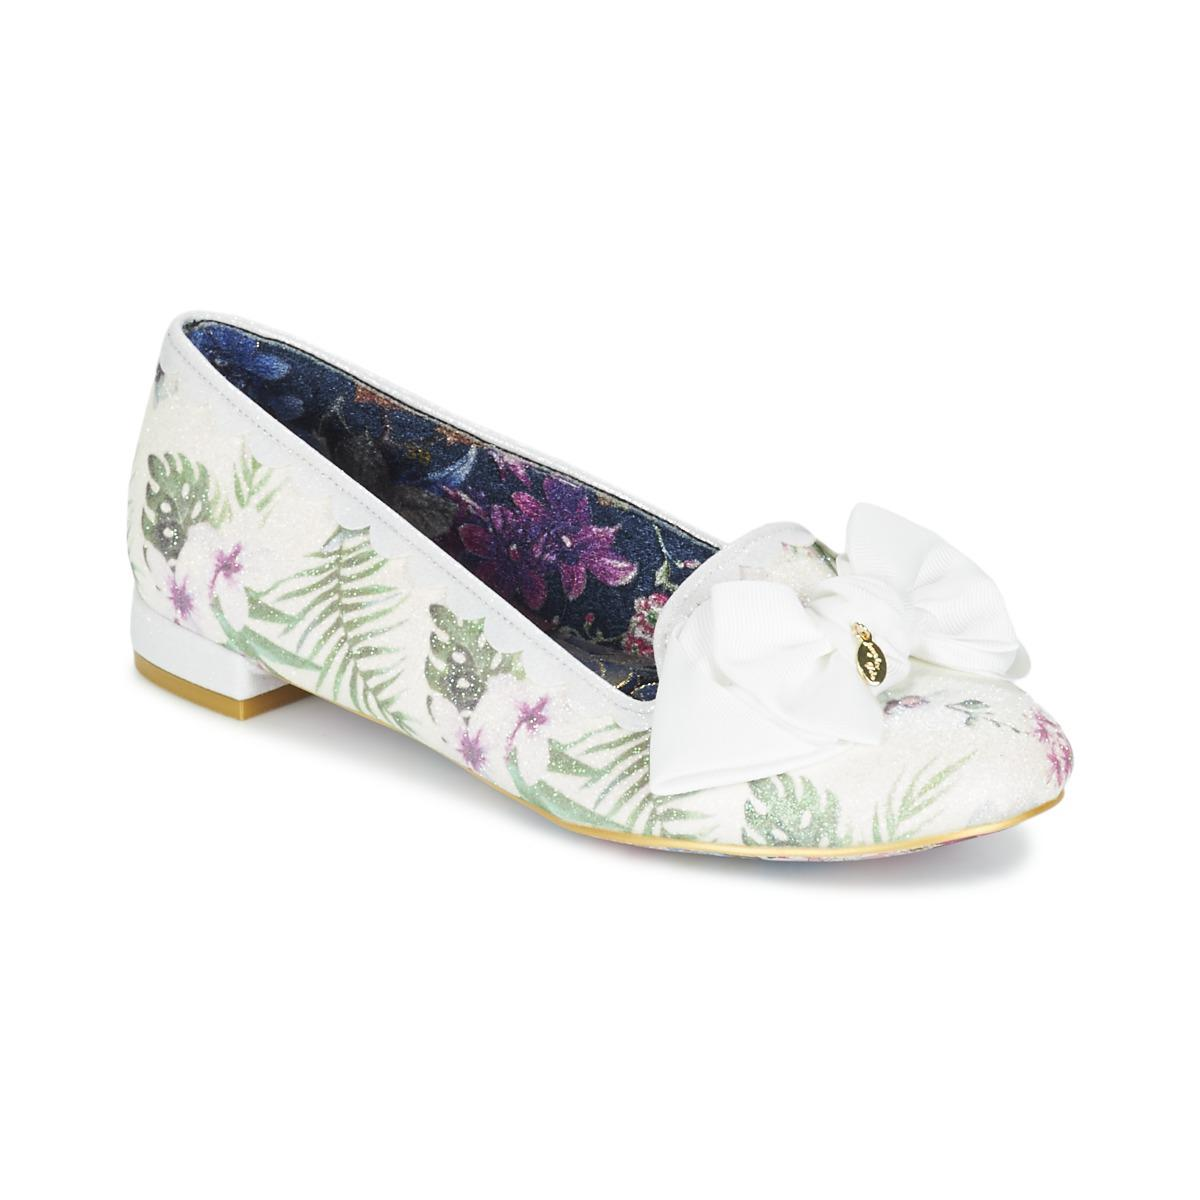 Irregular Choice SULU women's Shoes (Pumps / Ballerinas) in Free Shipping New Styles Discount Supply Find Great Cheap Price Shop DJBZnP8